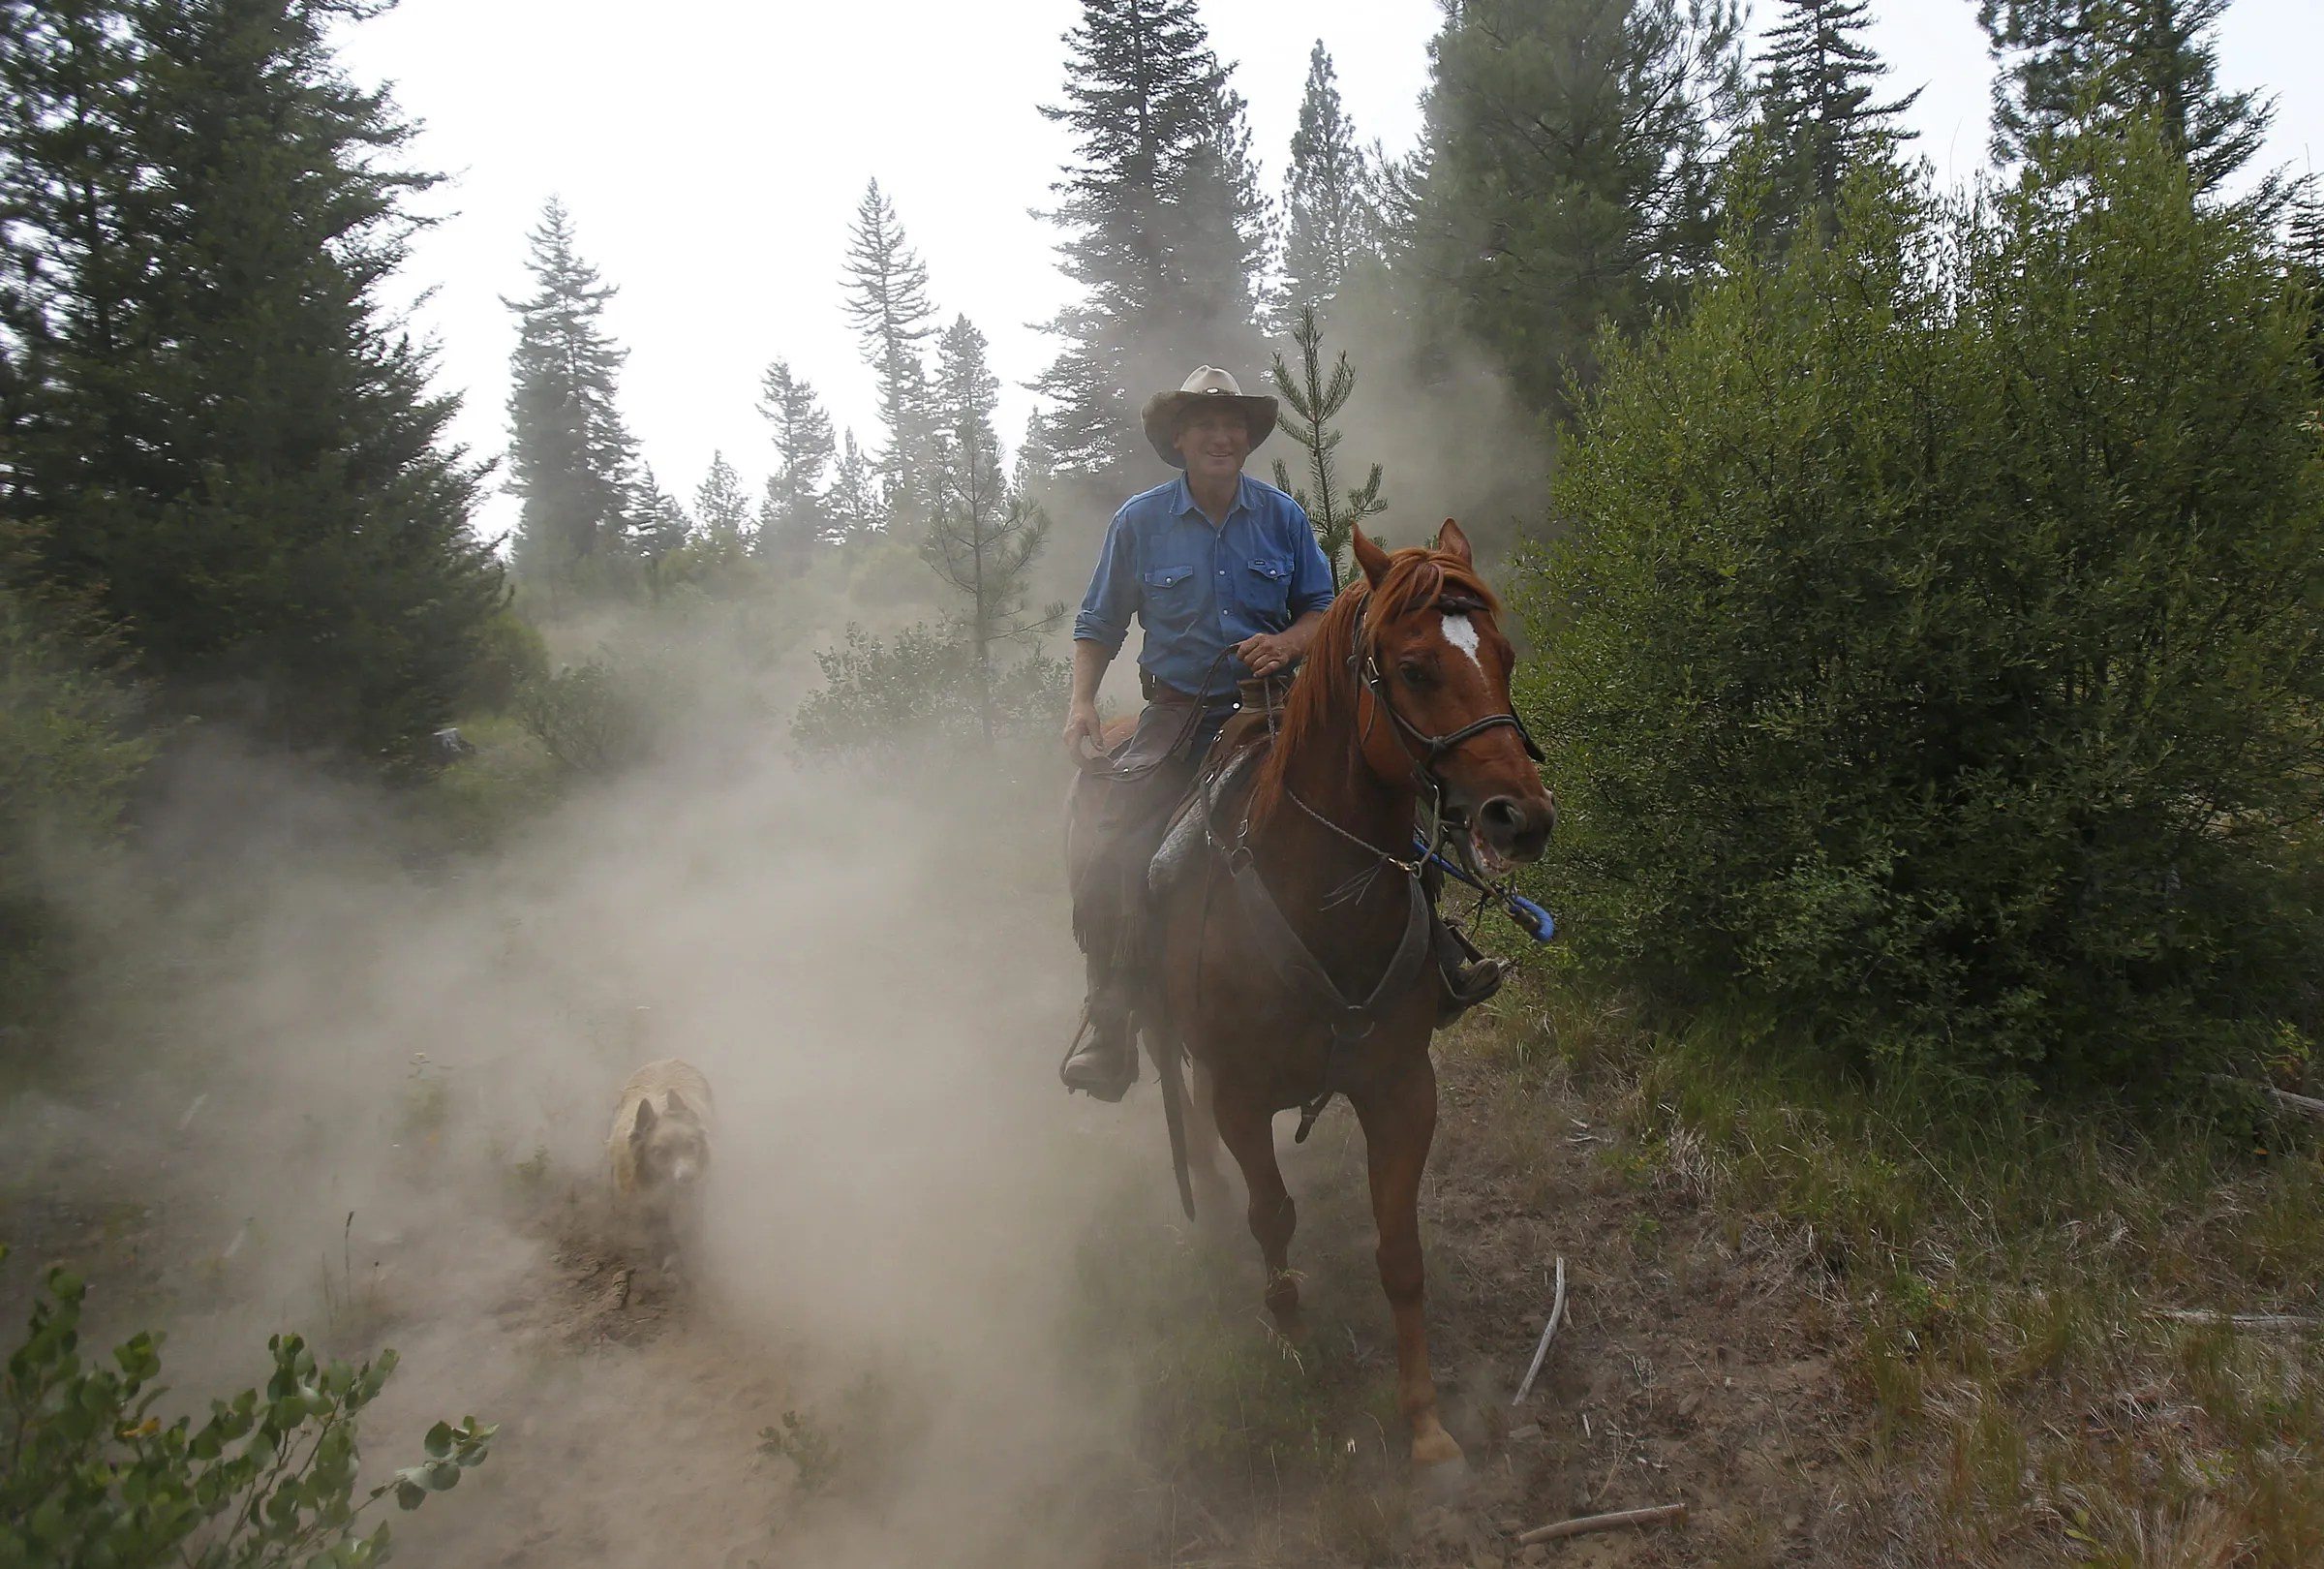 Range Rider Bill Johnson rides through rough terrain as he monitors an area that showed heavy wolf traffic earlier in the morning using GPS tracking data of collared wolves provided by the Department of Fish and Wildlife. (Sy Bean / The Seattle Times)